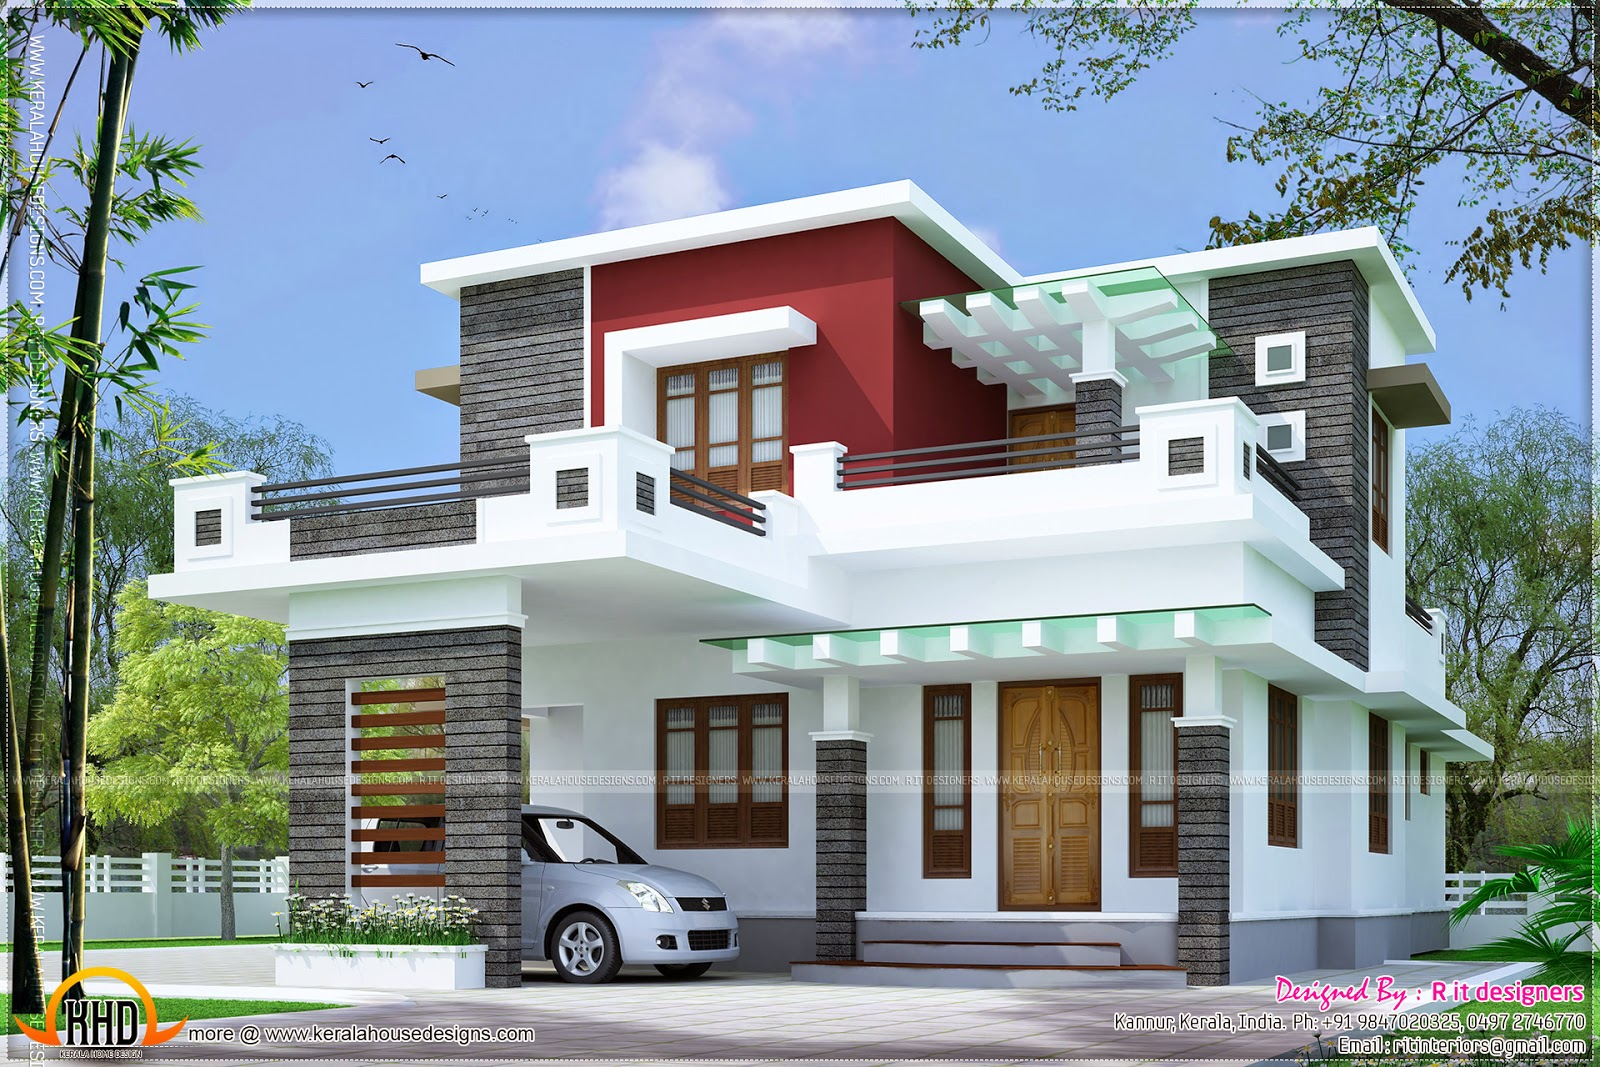 1959 square feet contemporary house exterior kerala home for House front model design